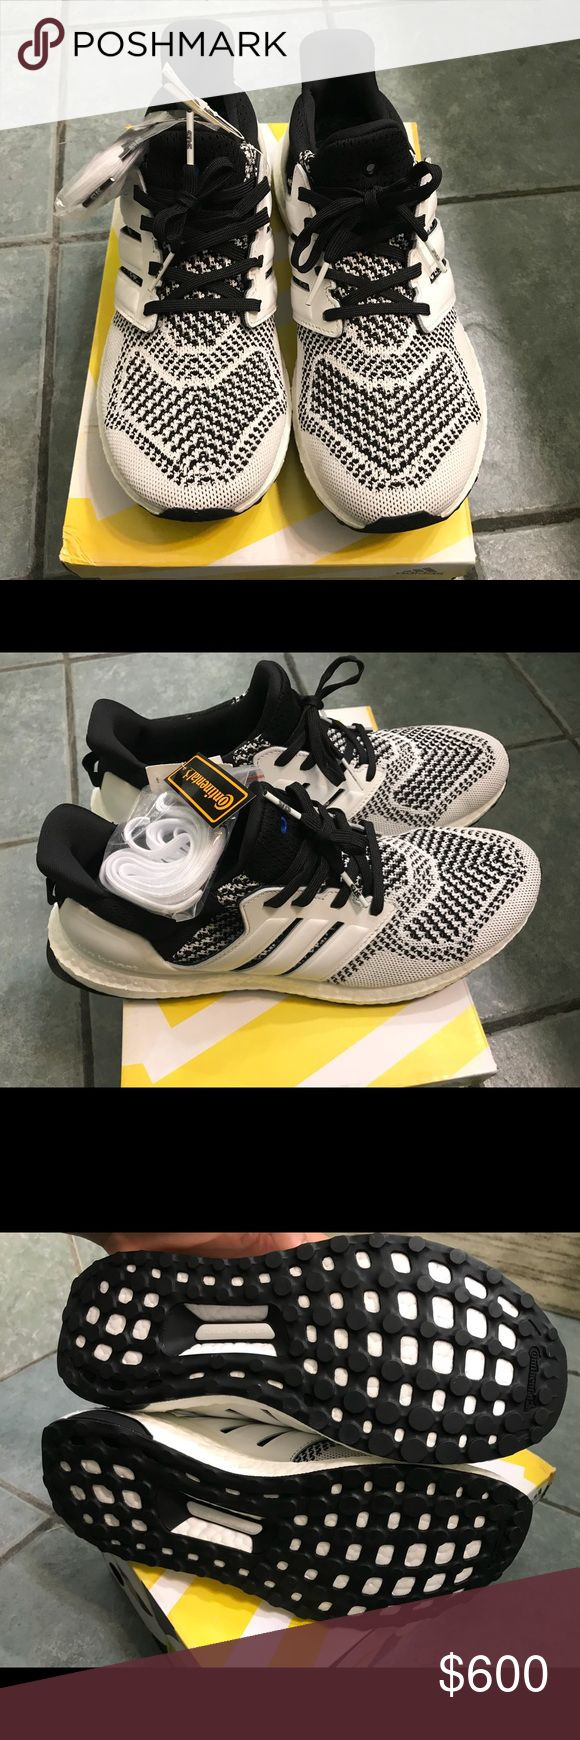 Adidas Ultraboost SNS size 11 Adidas Ultraboost SNS DS GRAILS OF ULTRBOOST  Size 11 fits a 10.5  Moving out by the end of the year so need cash fast!!  $600 FIRM adidas Shoes Sneakers